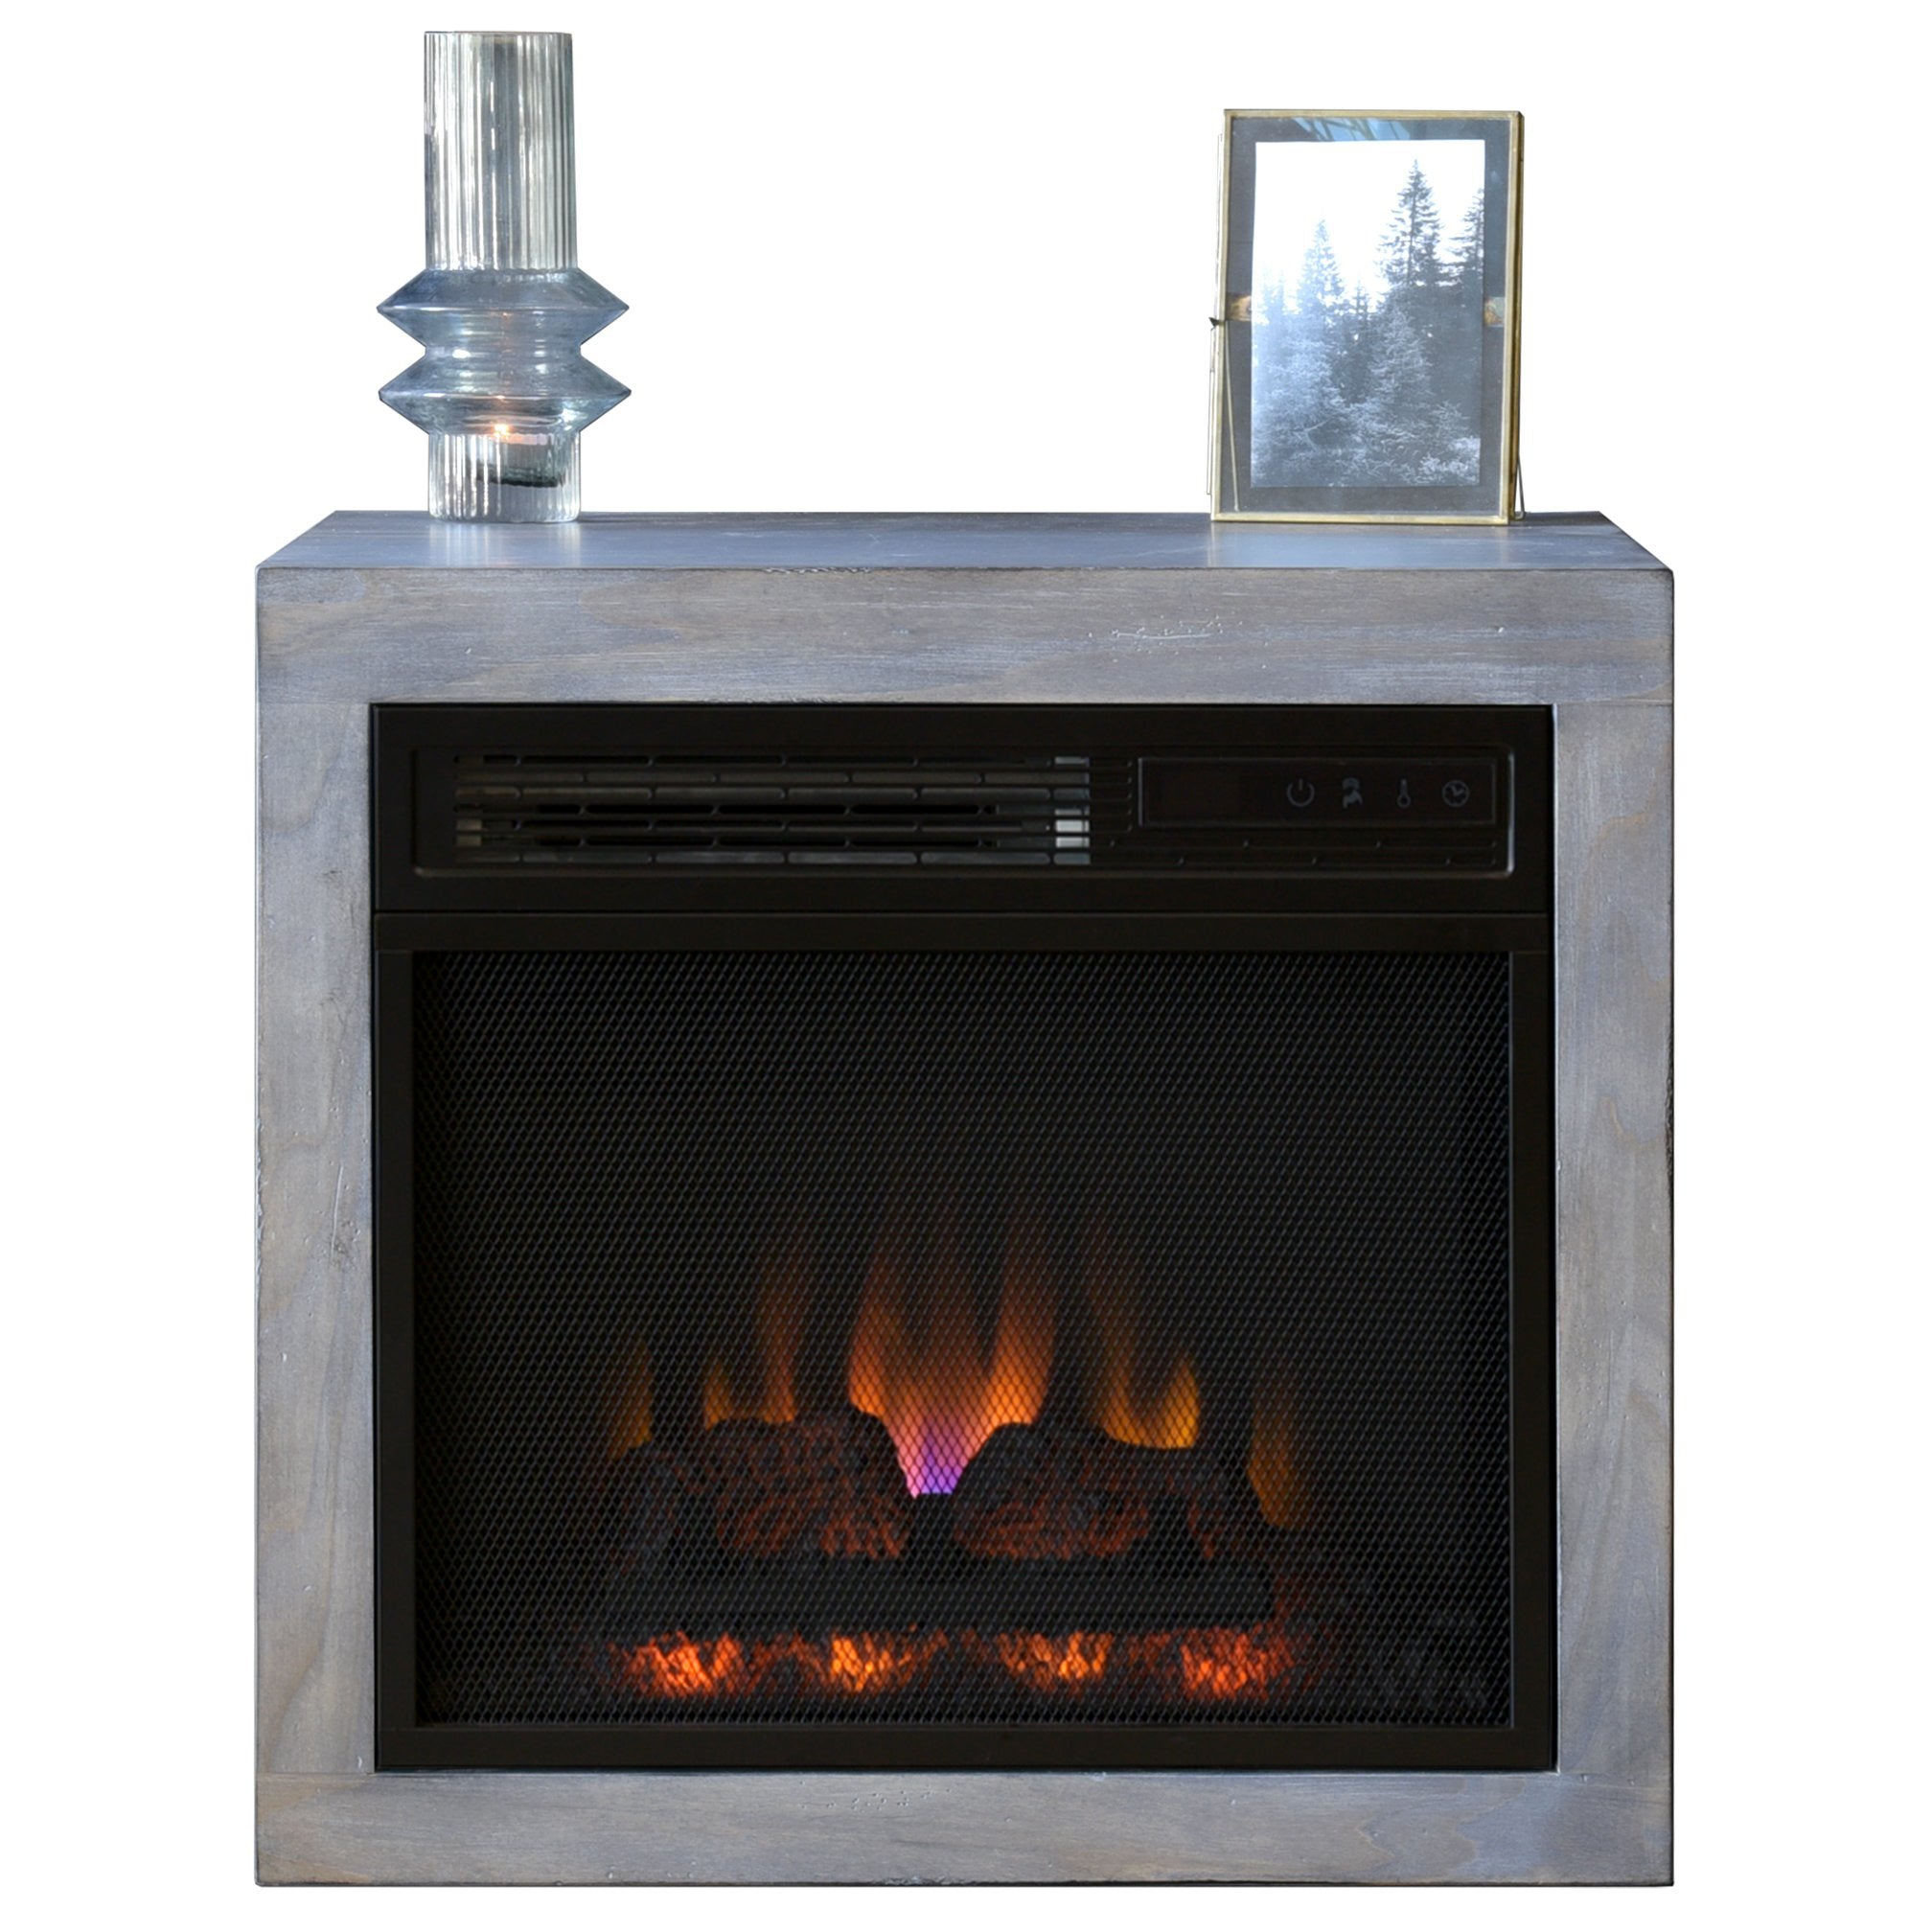 Gray Modern Floating Wall Mount Fireplace Electric Heater - ECO GEO - Lakewood